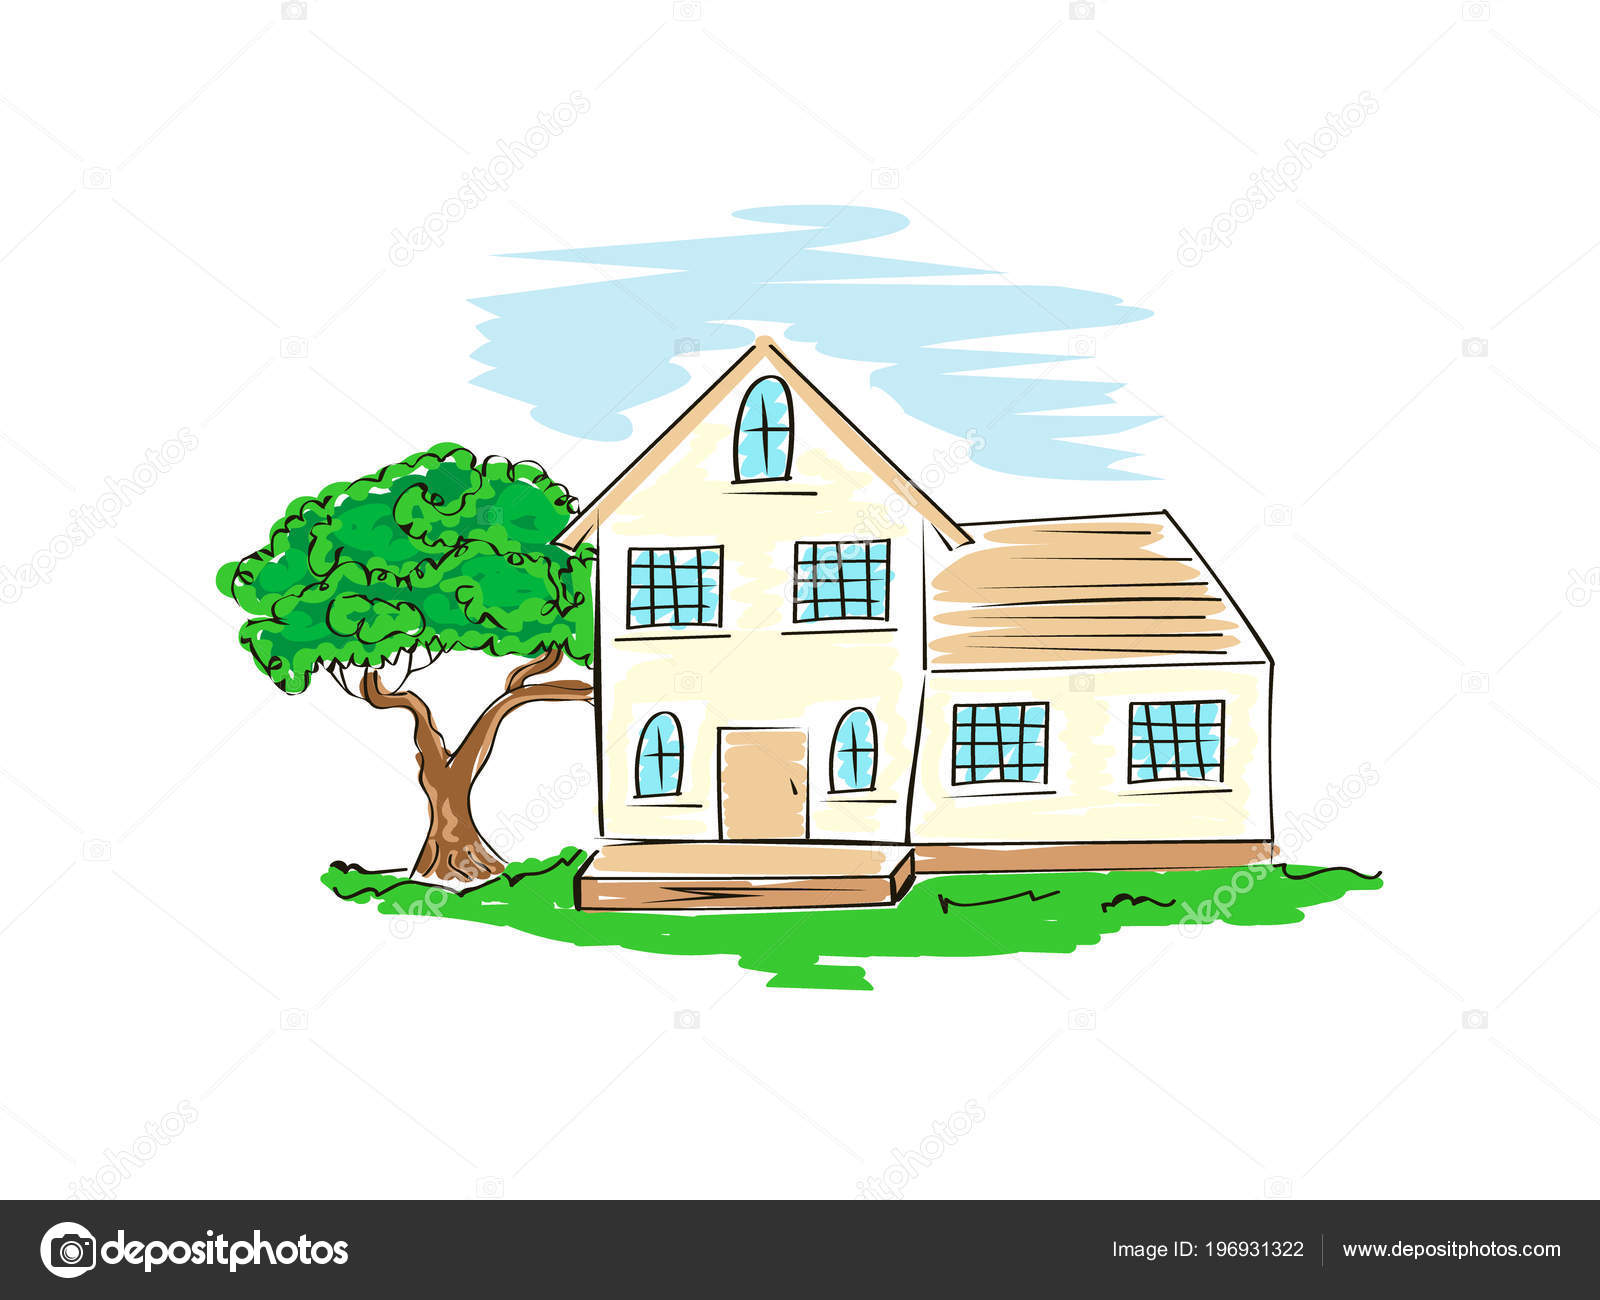 Croquis Maison Simple Croquis Vector Stock Maison Architecture Dessin Main Libre Simple